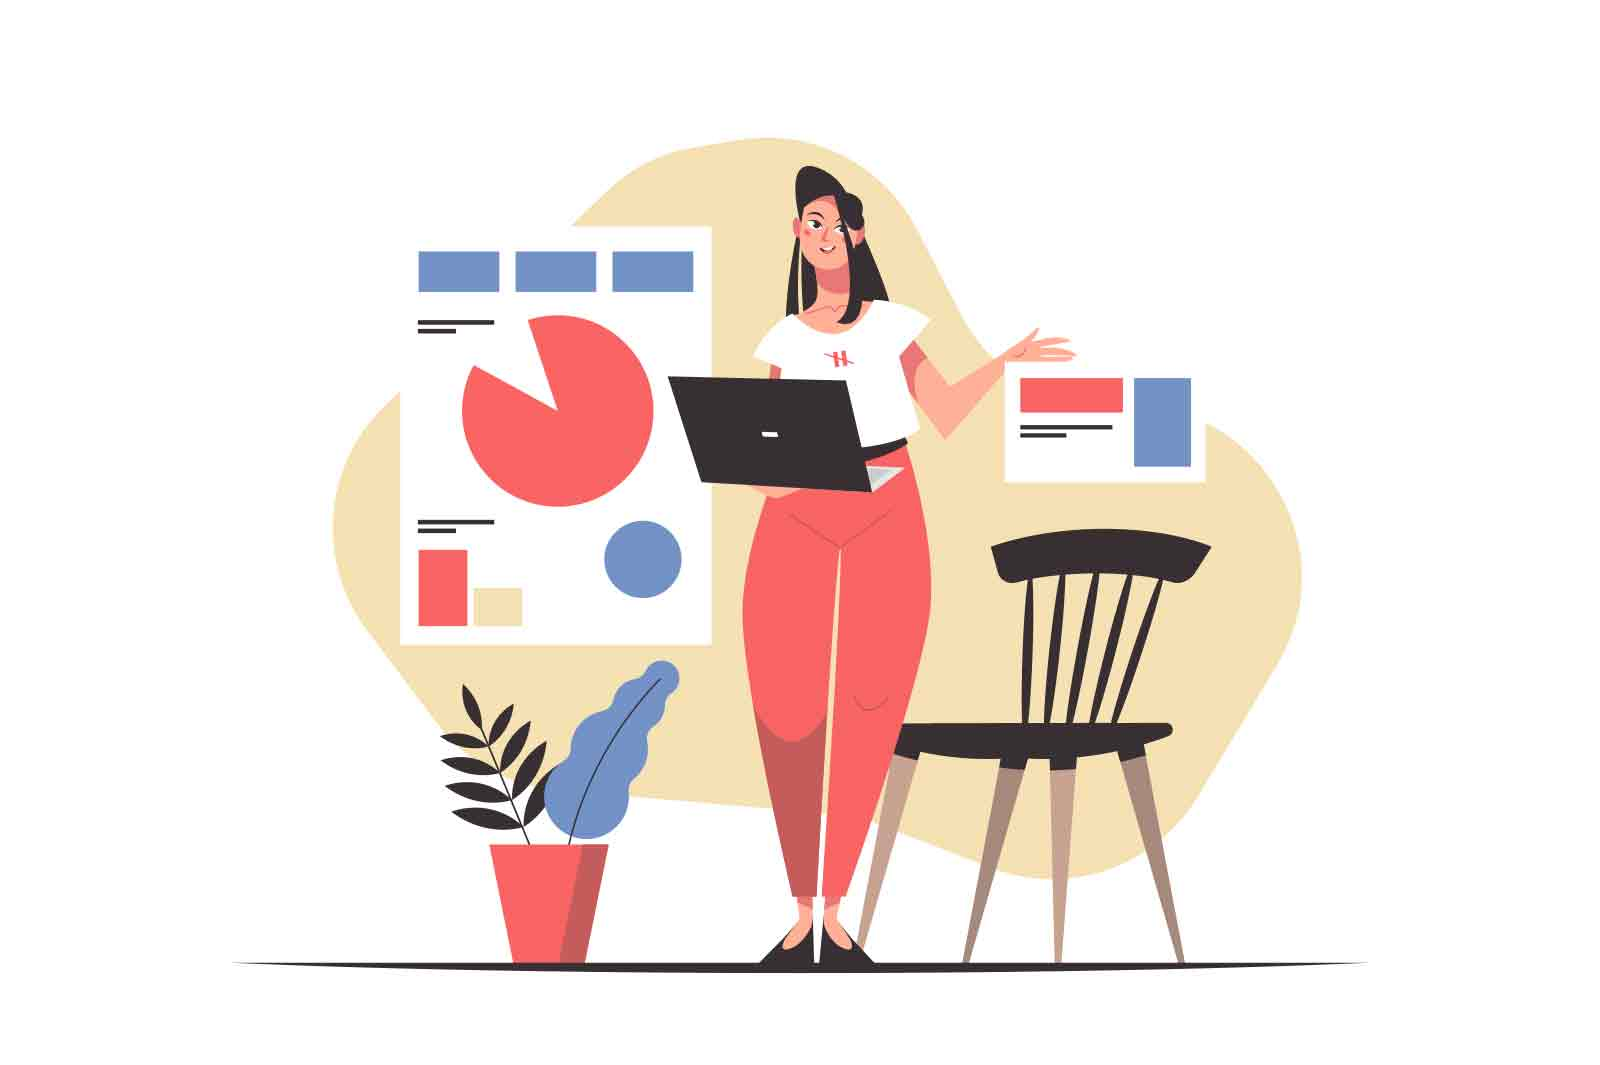 Woman runs business presentation on conference vector illustration. Posters with charts, laptop for training or entrepreneurs meeting flat style. Business and job concept. White background